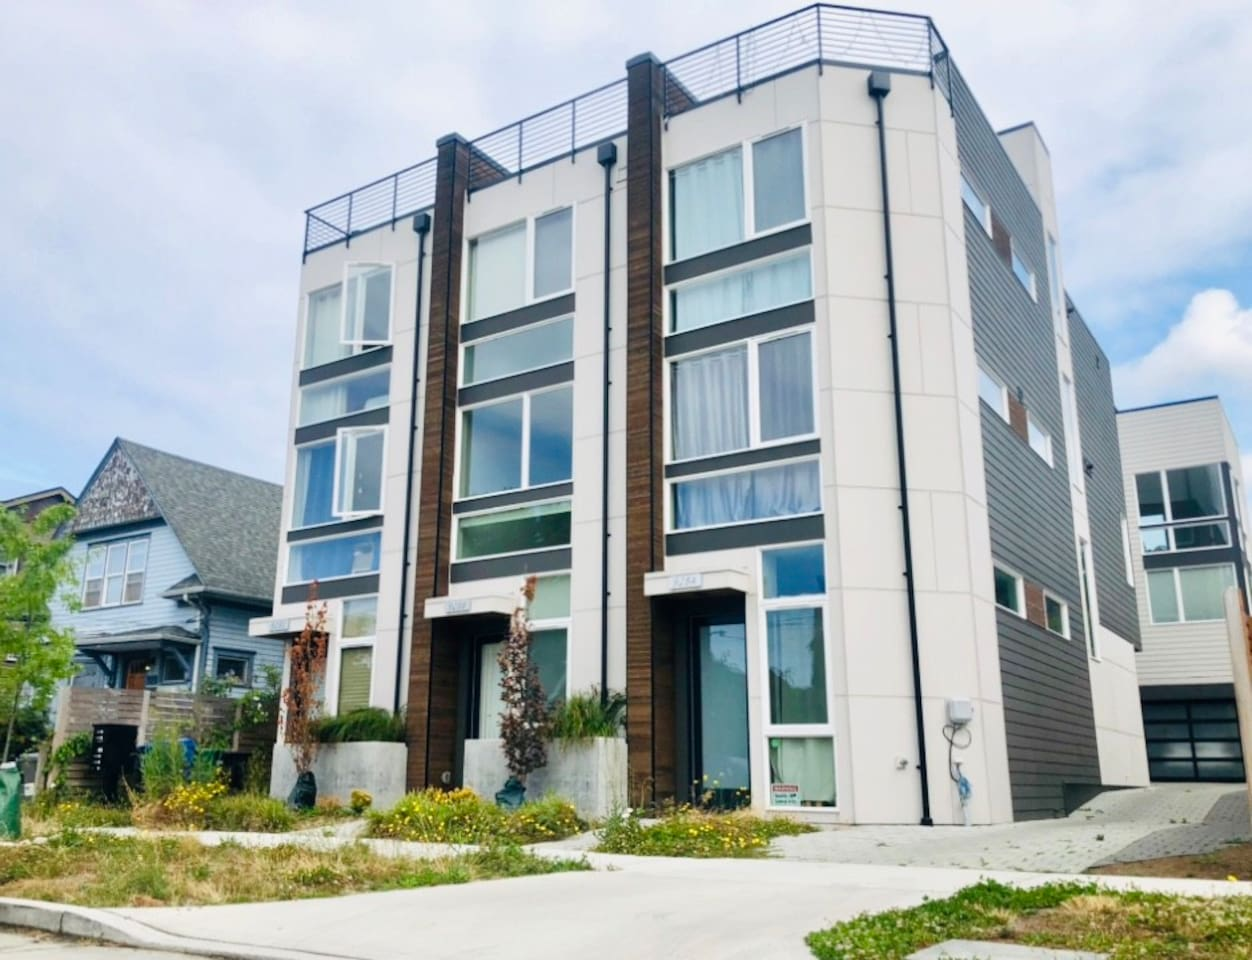 Stunning townhome with two rooftop decks. Modern and contemporary design. Built in July 2019 in the heart of Ballard.